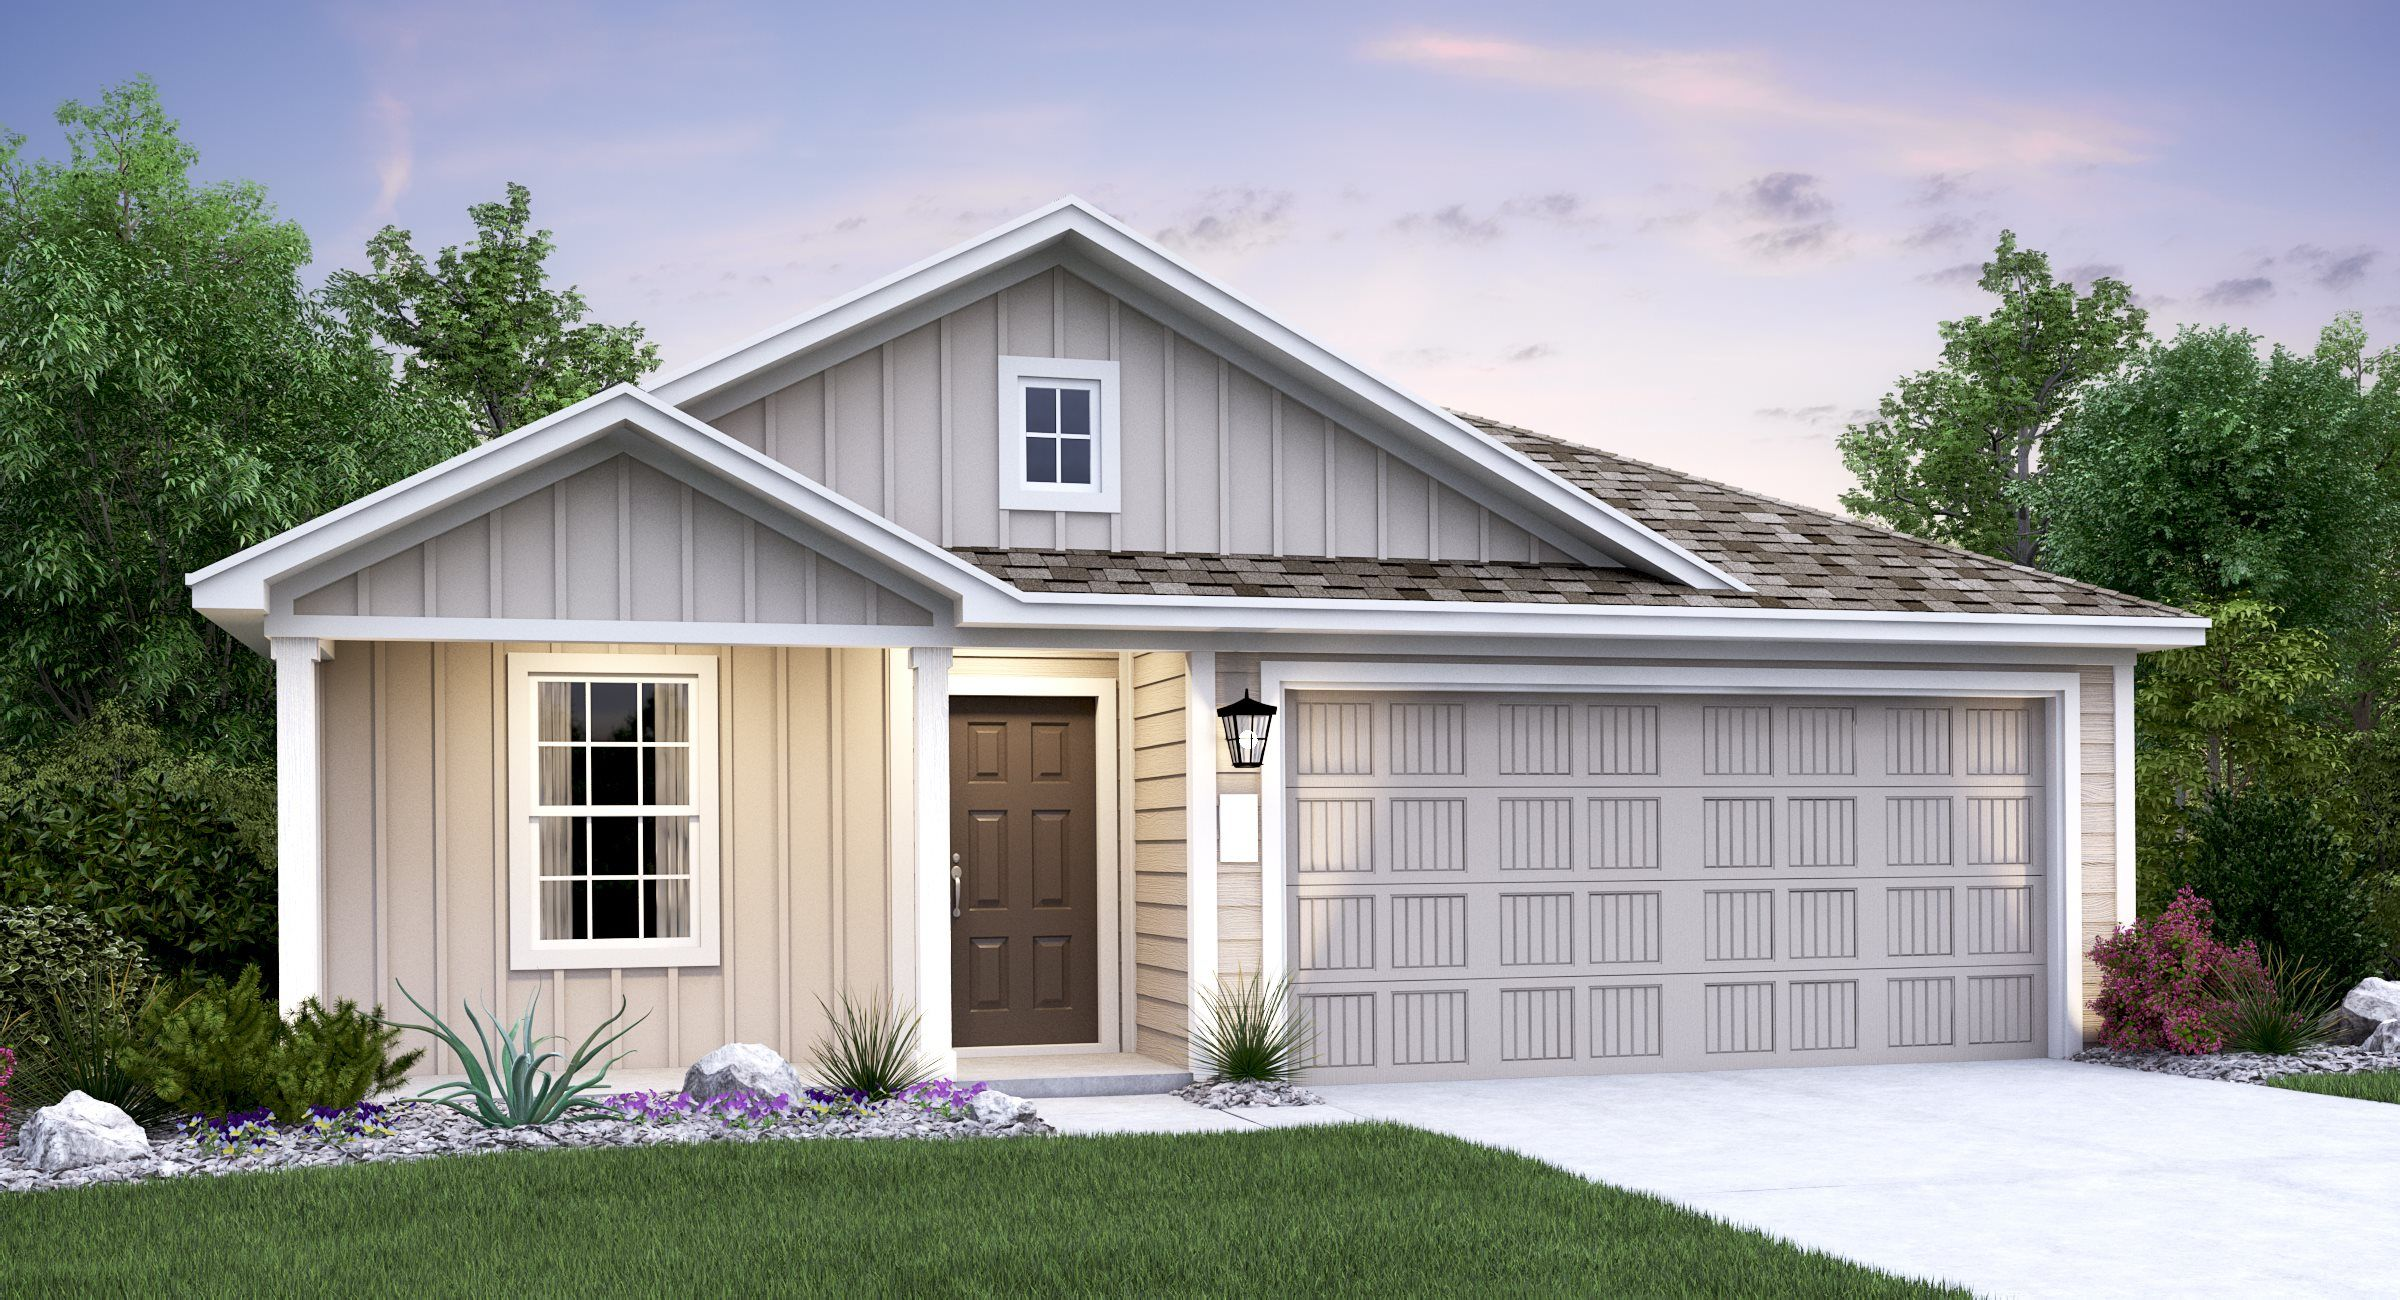 'The Ridge at Salado Creek - Watermill Collection' by Lennar - San Antonio Homebuilding in San Antonio